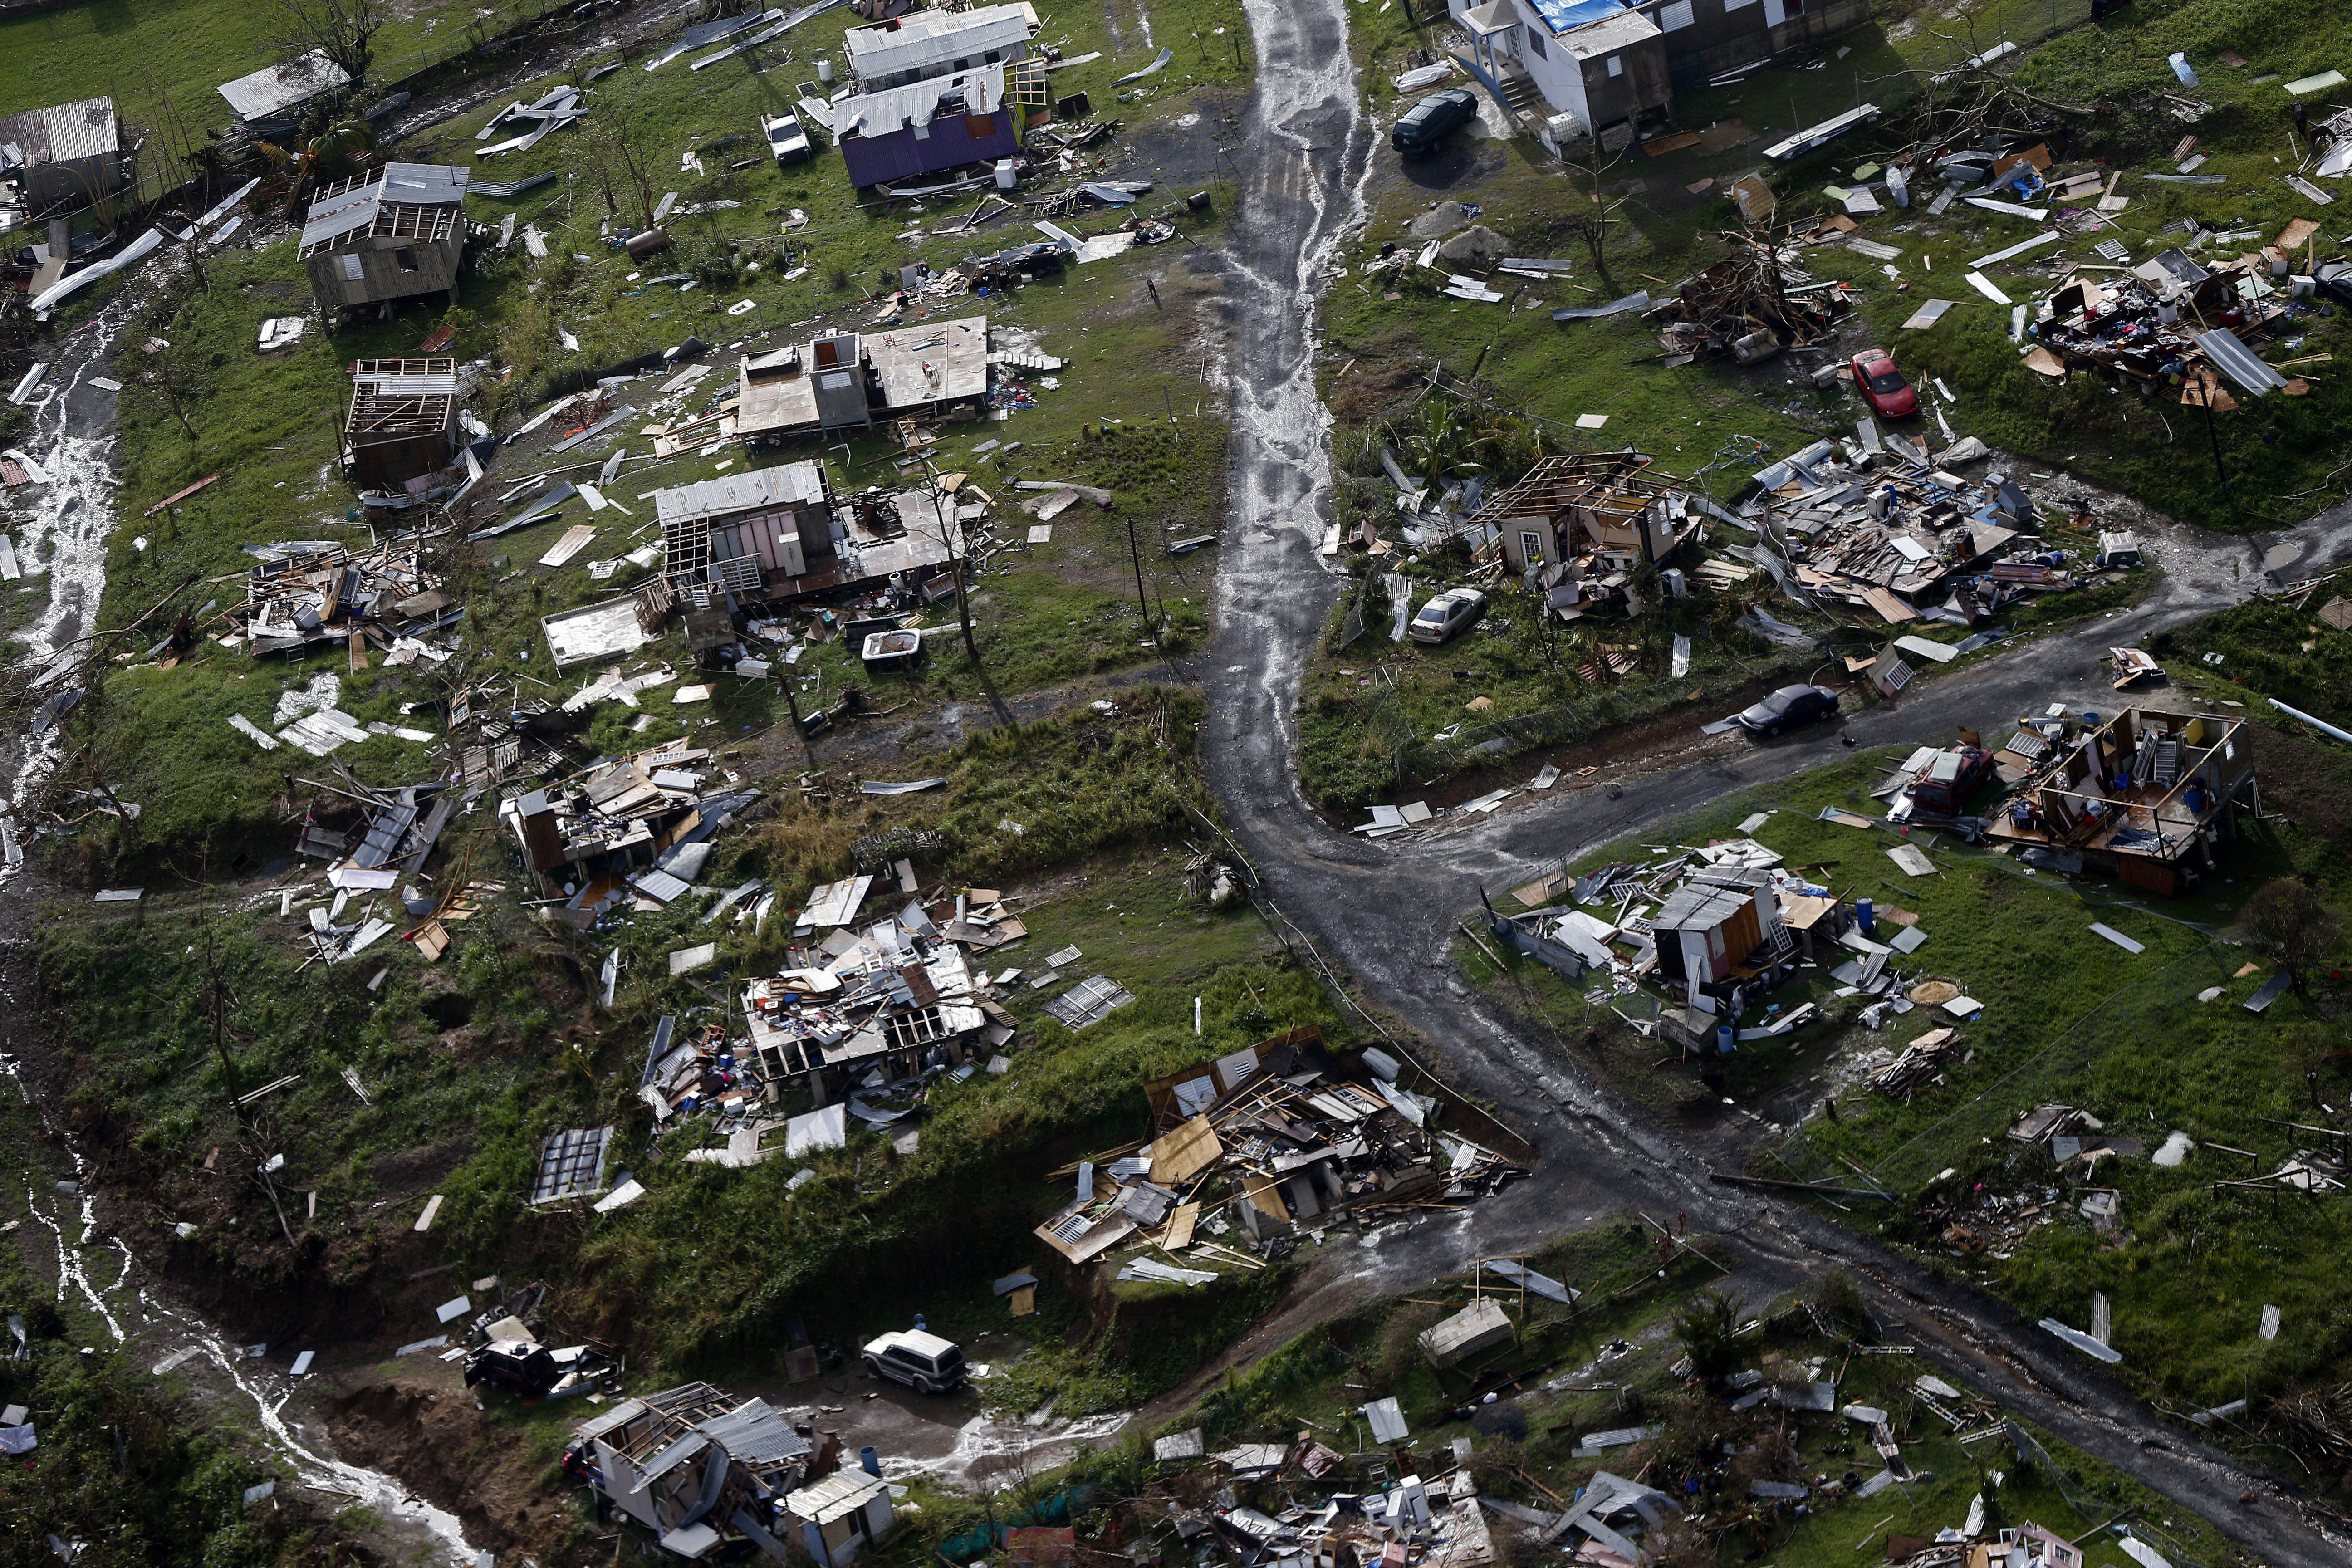 The community of Toa Alta lies in rubble on Sept. 28, 2017, after Hurricane Maria passed over Puerto Rico.